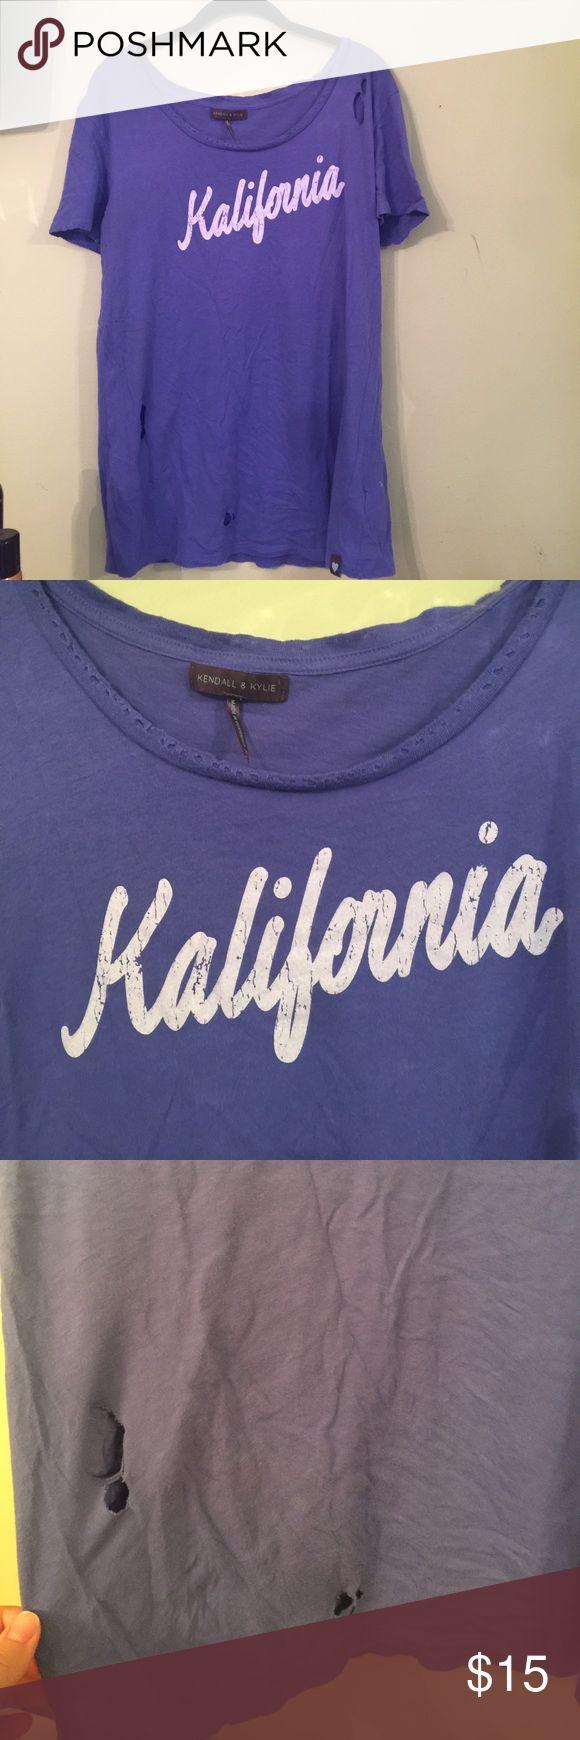 Kendall and Kylie Kalifornia Distressed Tee I wear a size S-M and i wear this for an oversized/ off the shoulder look.. very cute and trendy too with holes for distressed look Kendall & Kylie Tops Tees - Short Sleeve